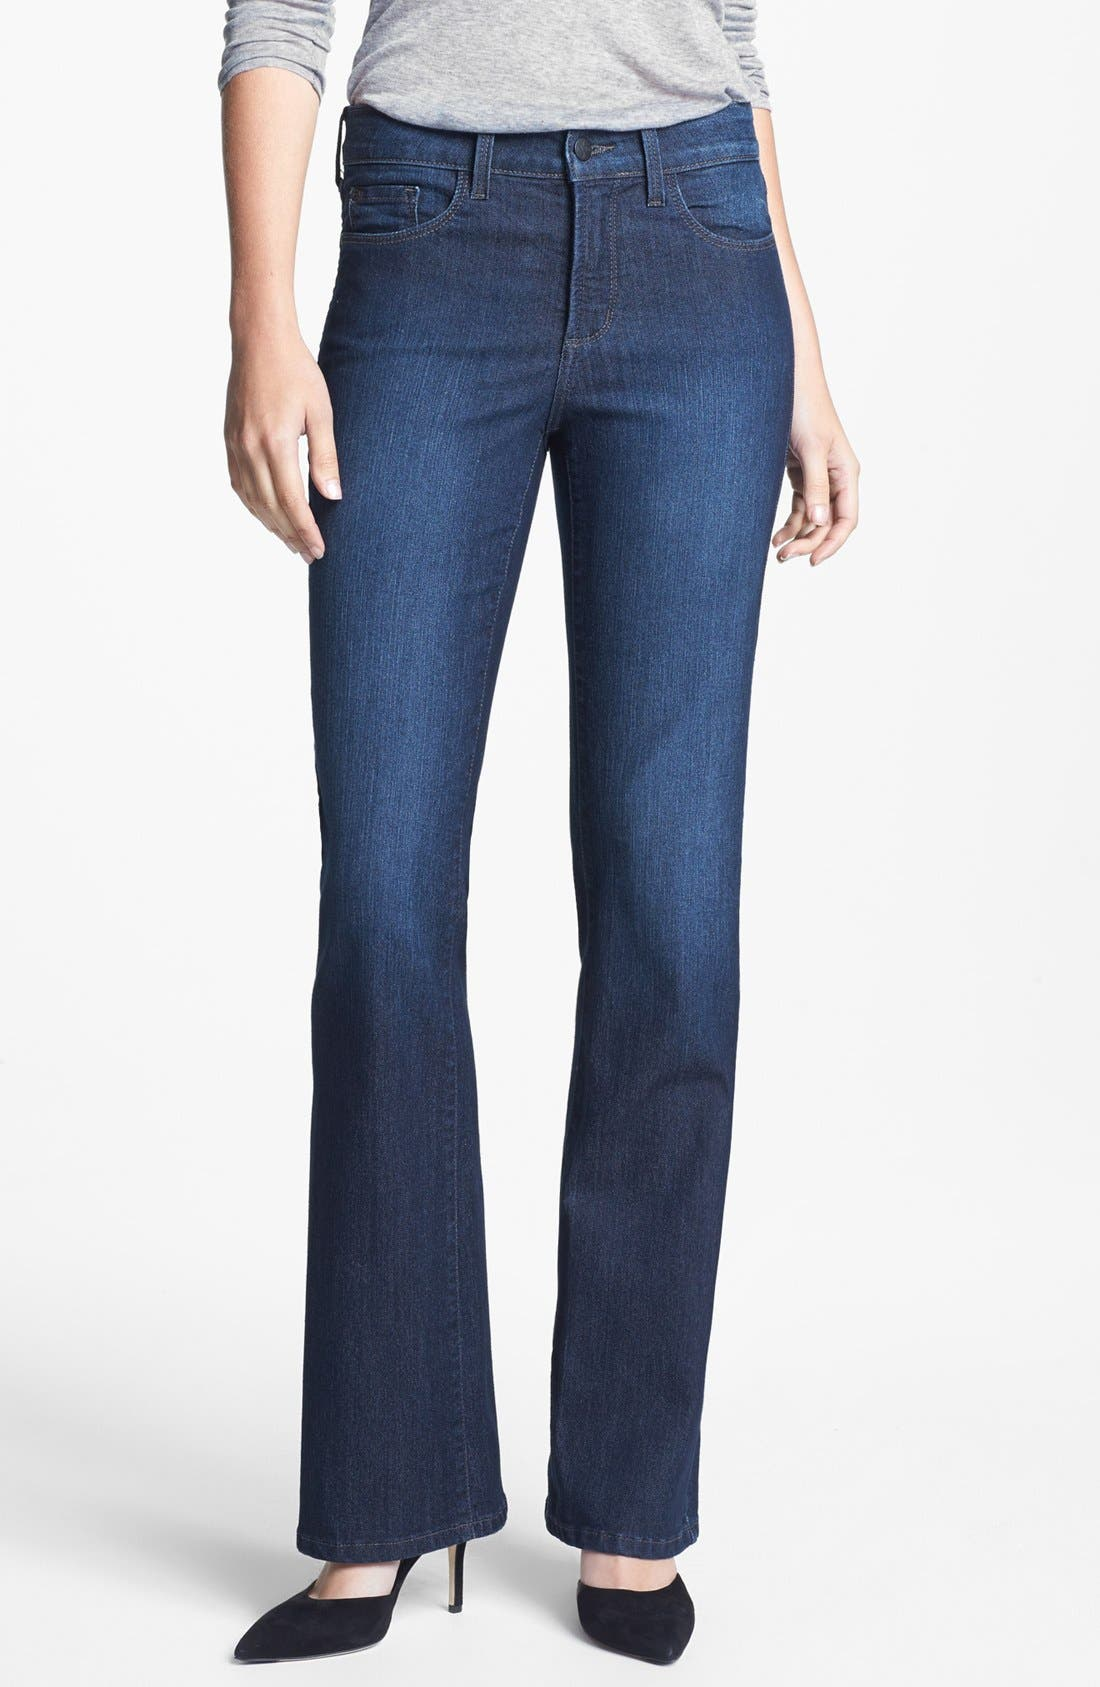 Alternate Image 1 Selected - NYDJ 'Barbara' Stretch Bootcut Jeans (Burbank)